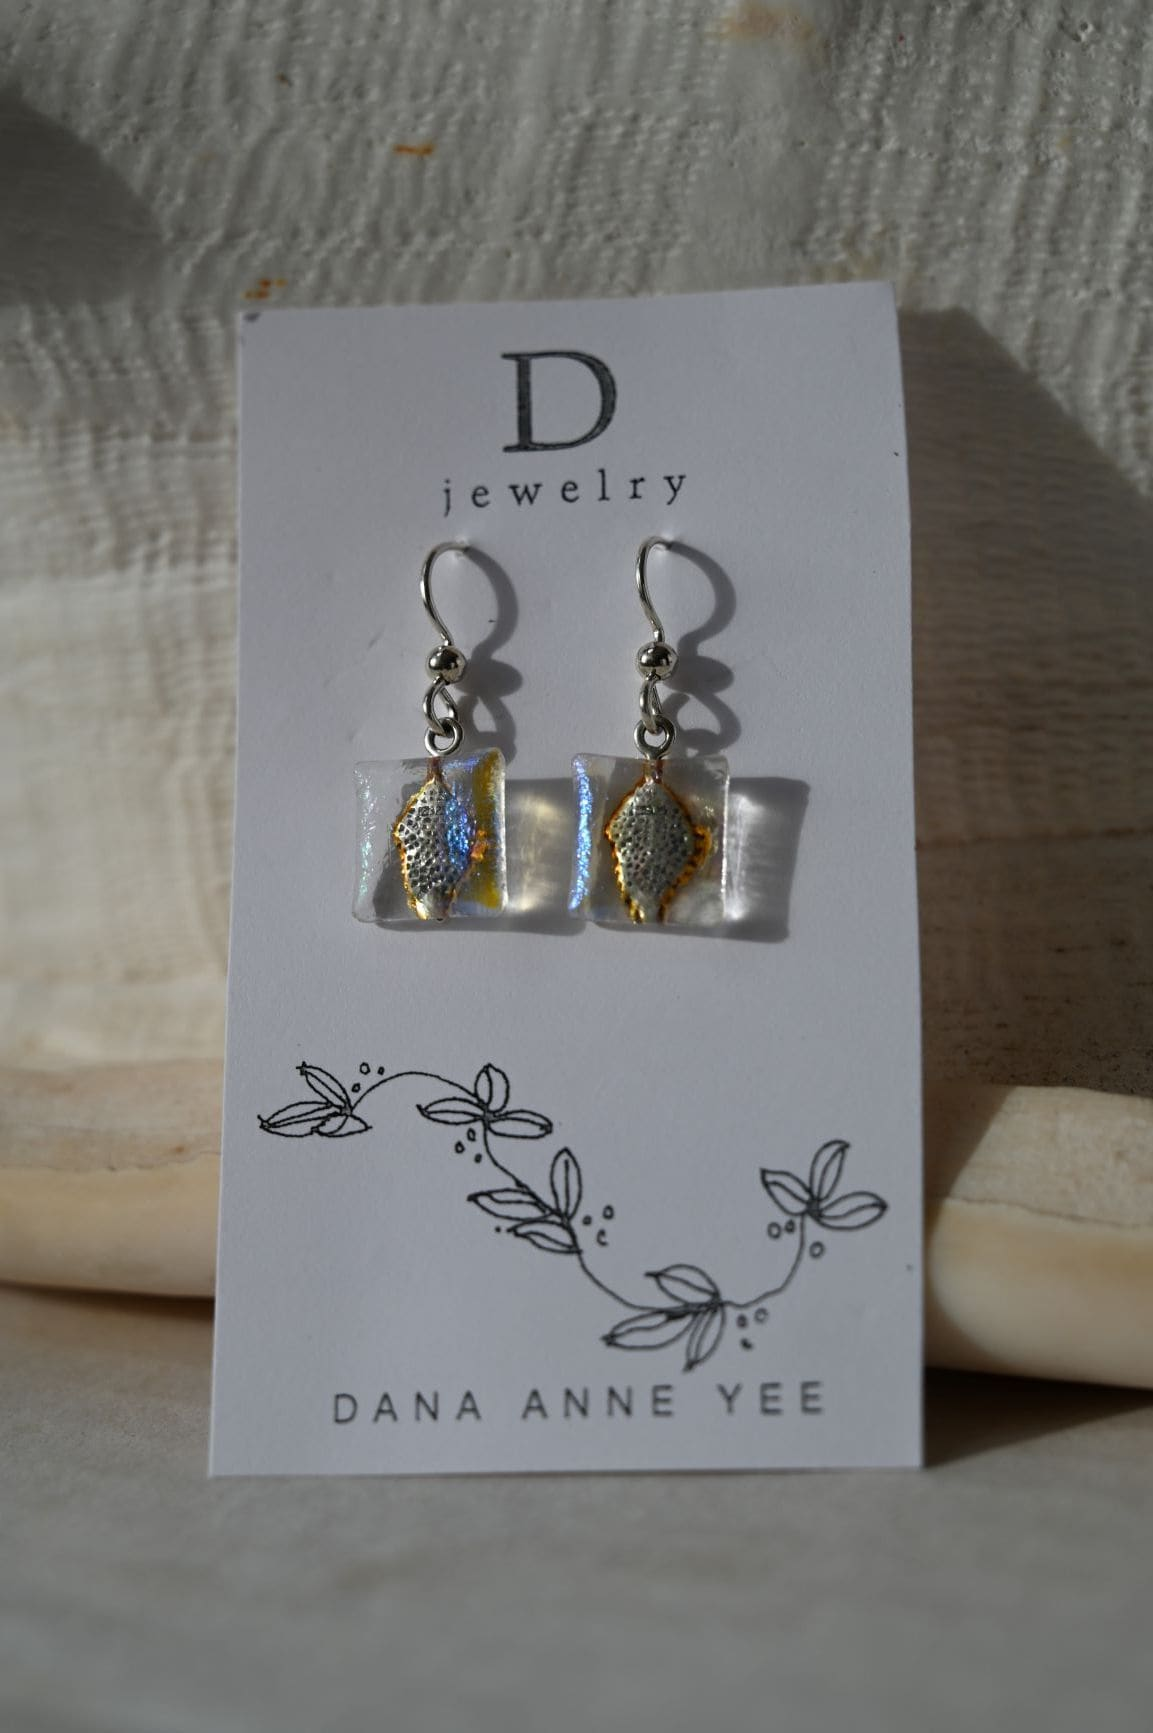 Dana Anne Yee Jewelry & Art: DAY-96 - Clear Rainbow Square Iridized Glass, Sterling Silver, Earrings